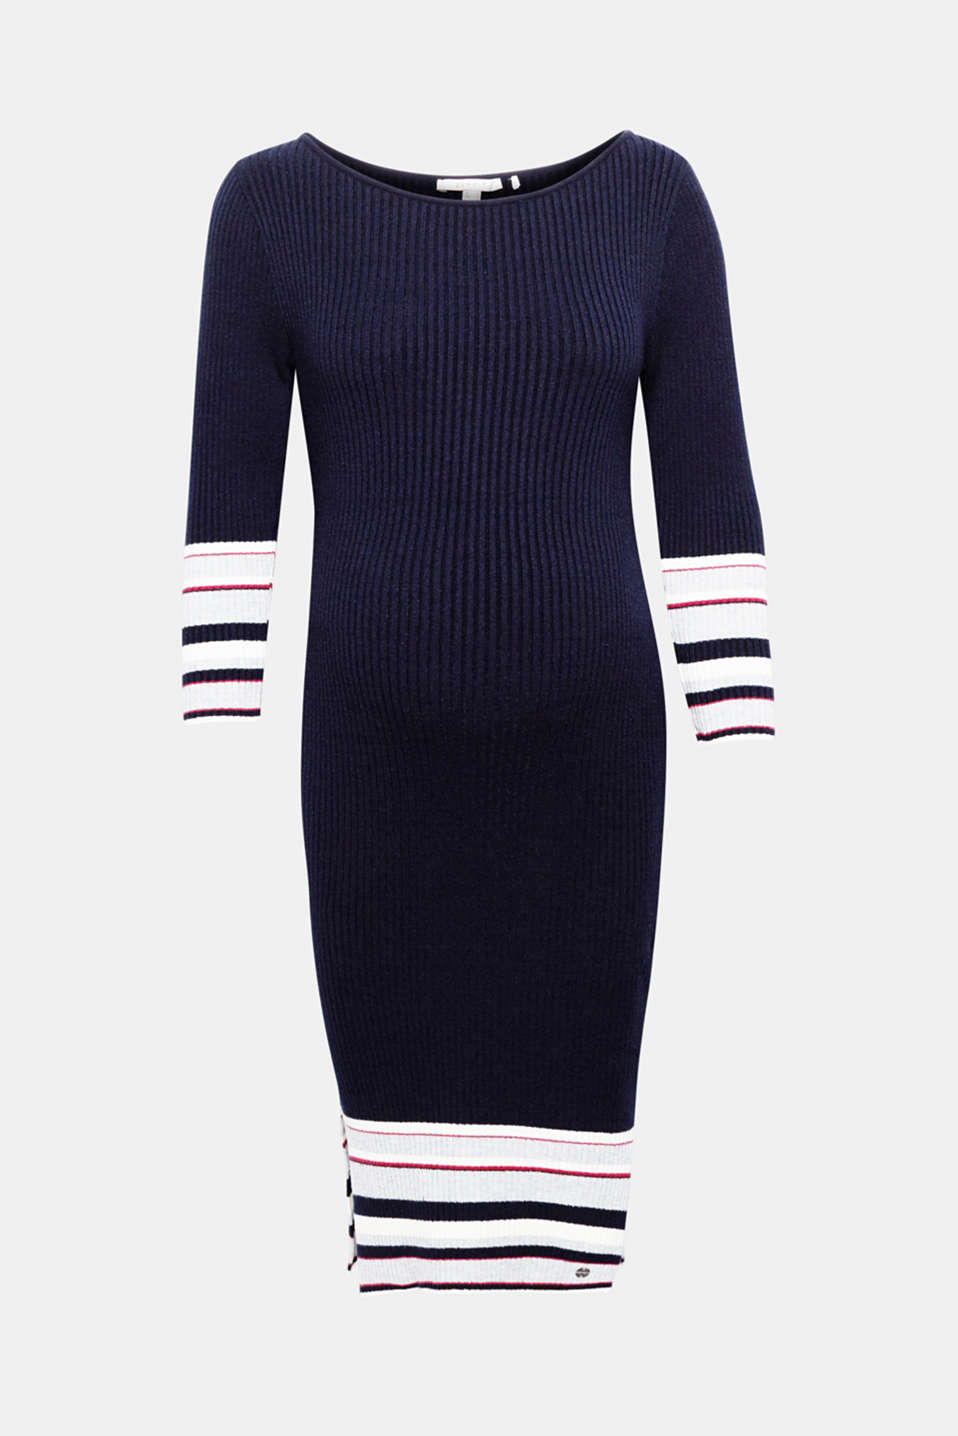 This rib knit dress with added stretch for comfort can be worn both during and after your pregnancy!